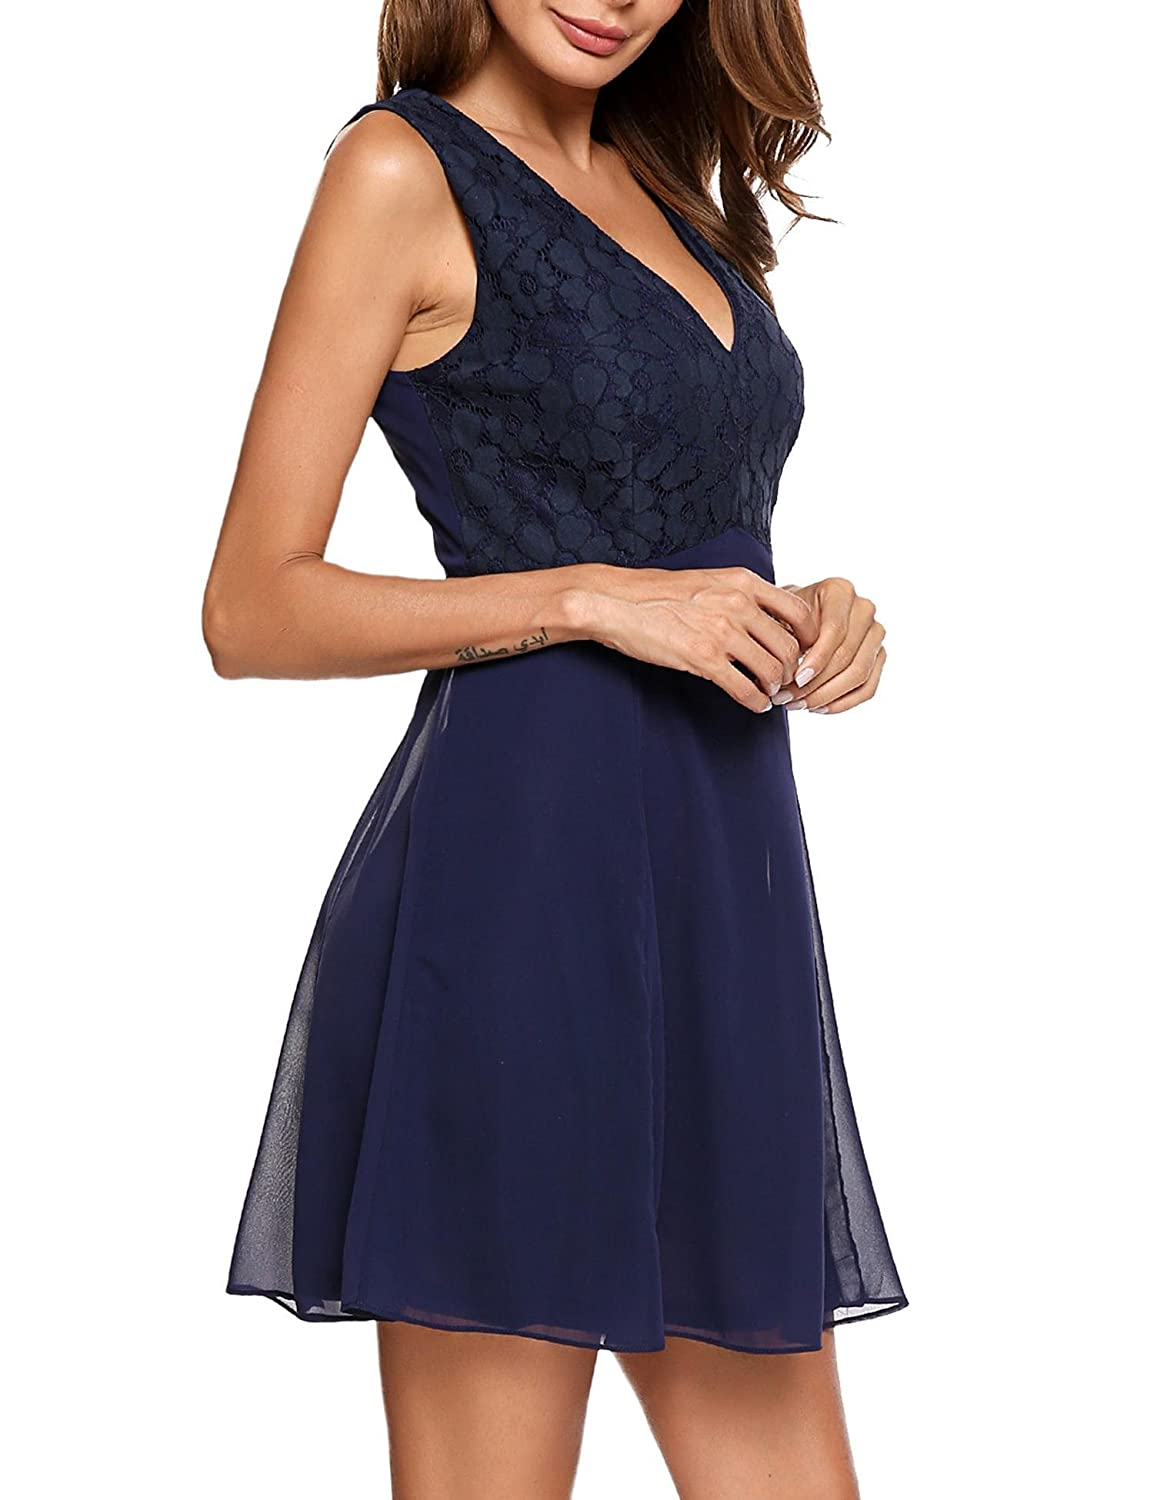 beef3c9ca0c UNibelle Women s Chiffon Lace Dress Deep V Neck Sexy Bodice Knee Length  Cocktail Wedding Party Dress at Amazon Women s Clothing store